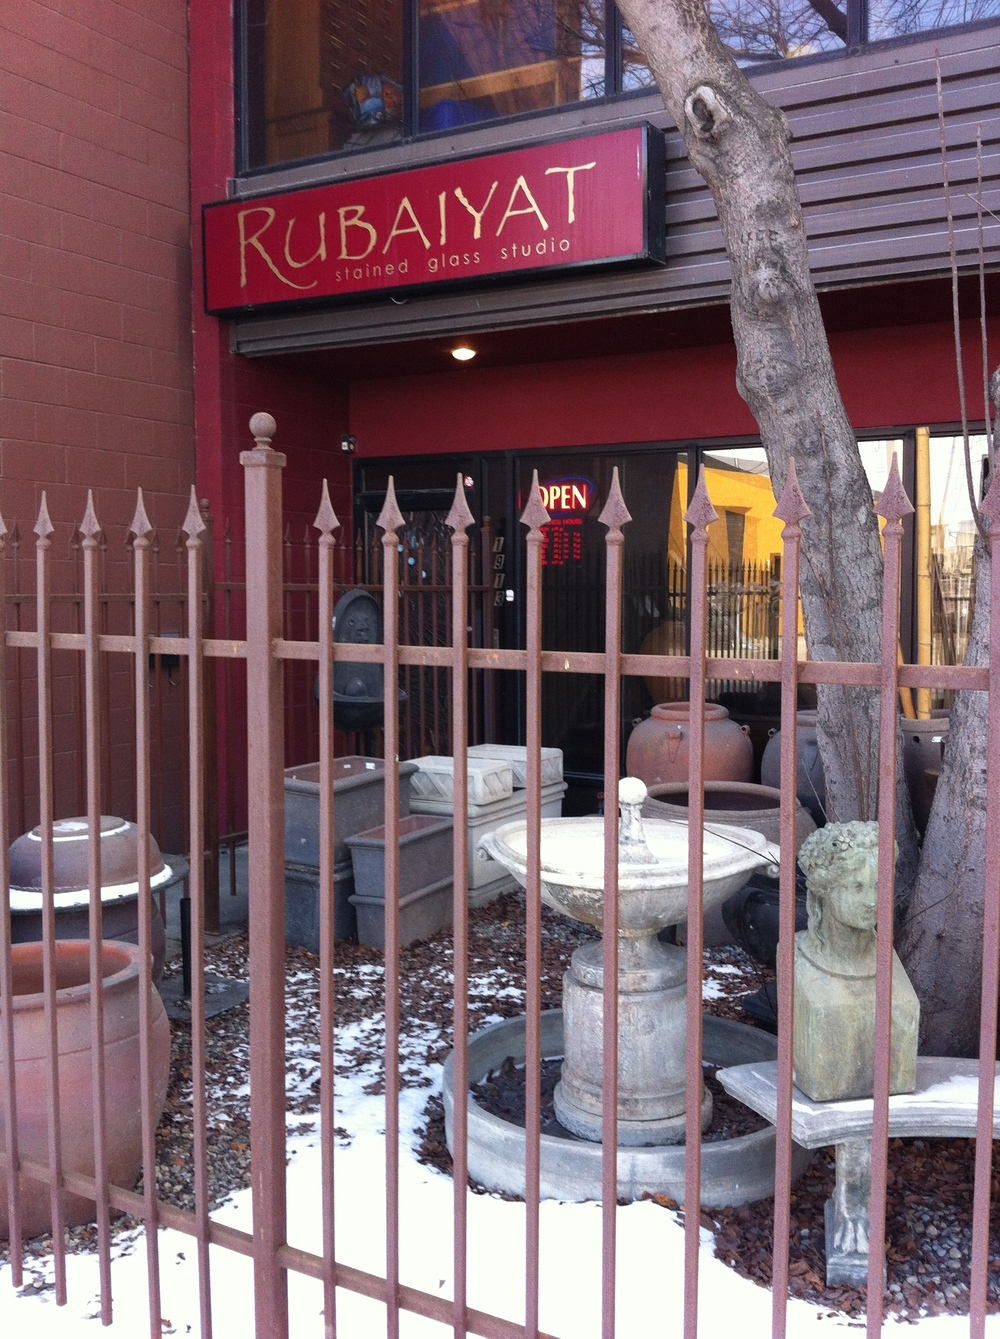 Entrance to Rubaiyat Stained Glass Studio.